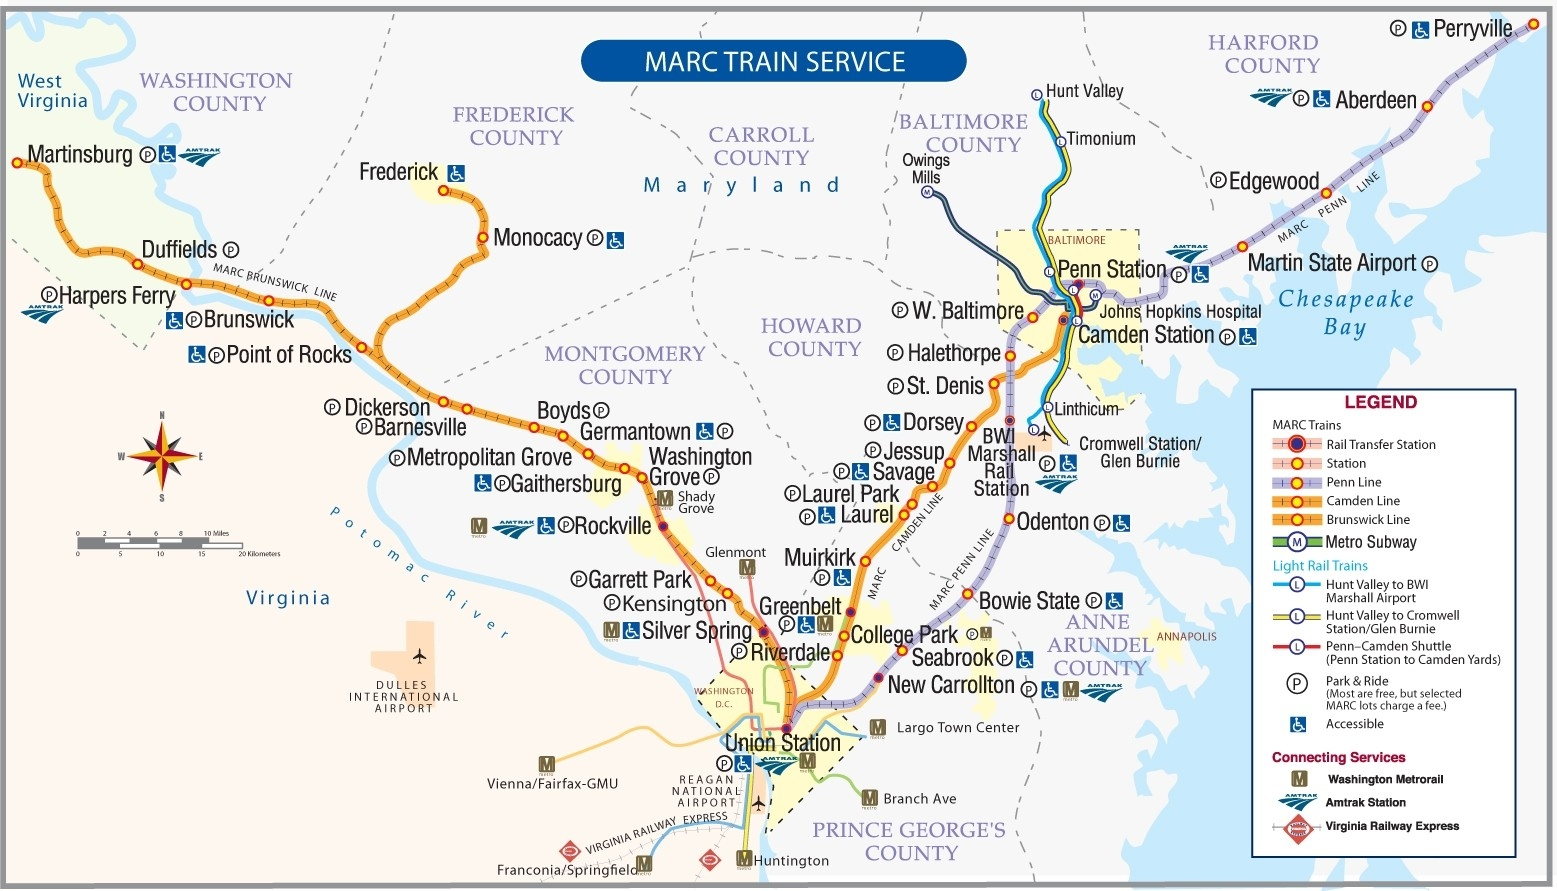 Penn Line Schedules | Maryland Transit Administration with Marc Train Schedule 46938